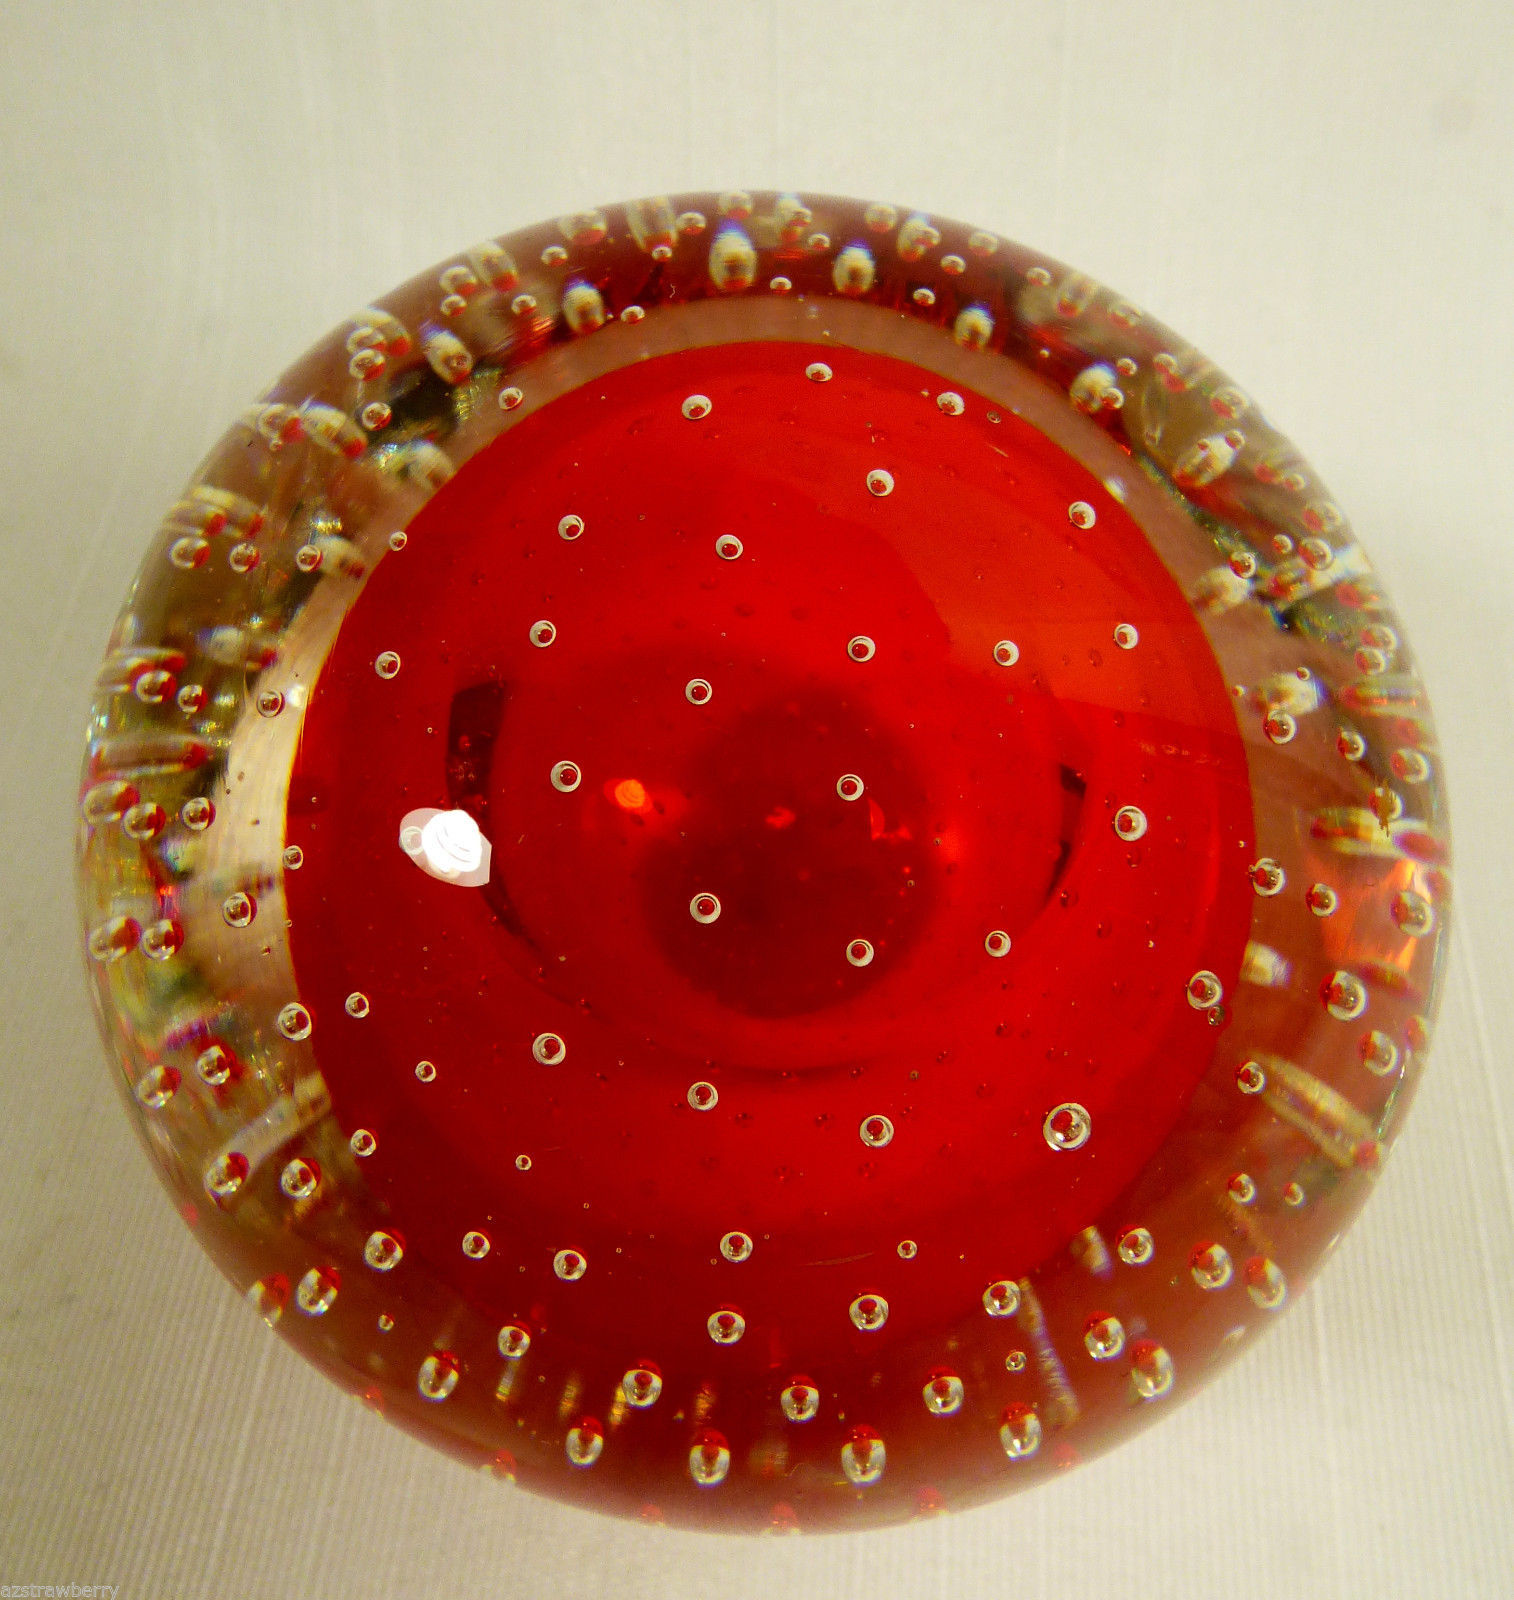 VTG Clear & Red Controlled Bubbles Art Glass Paperweight